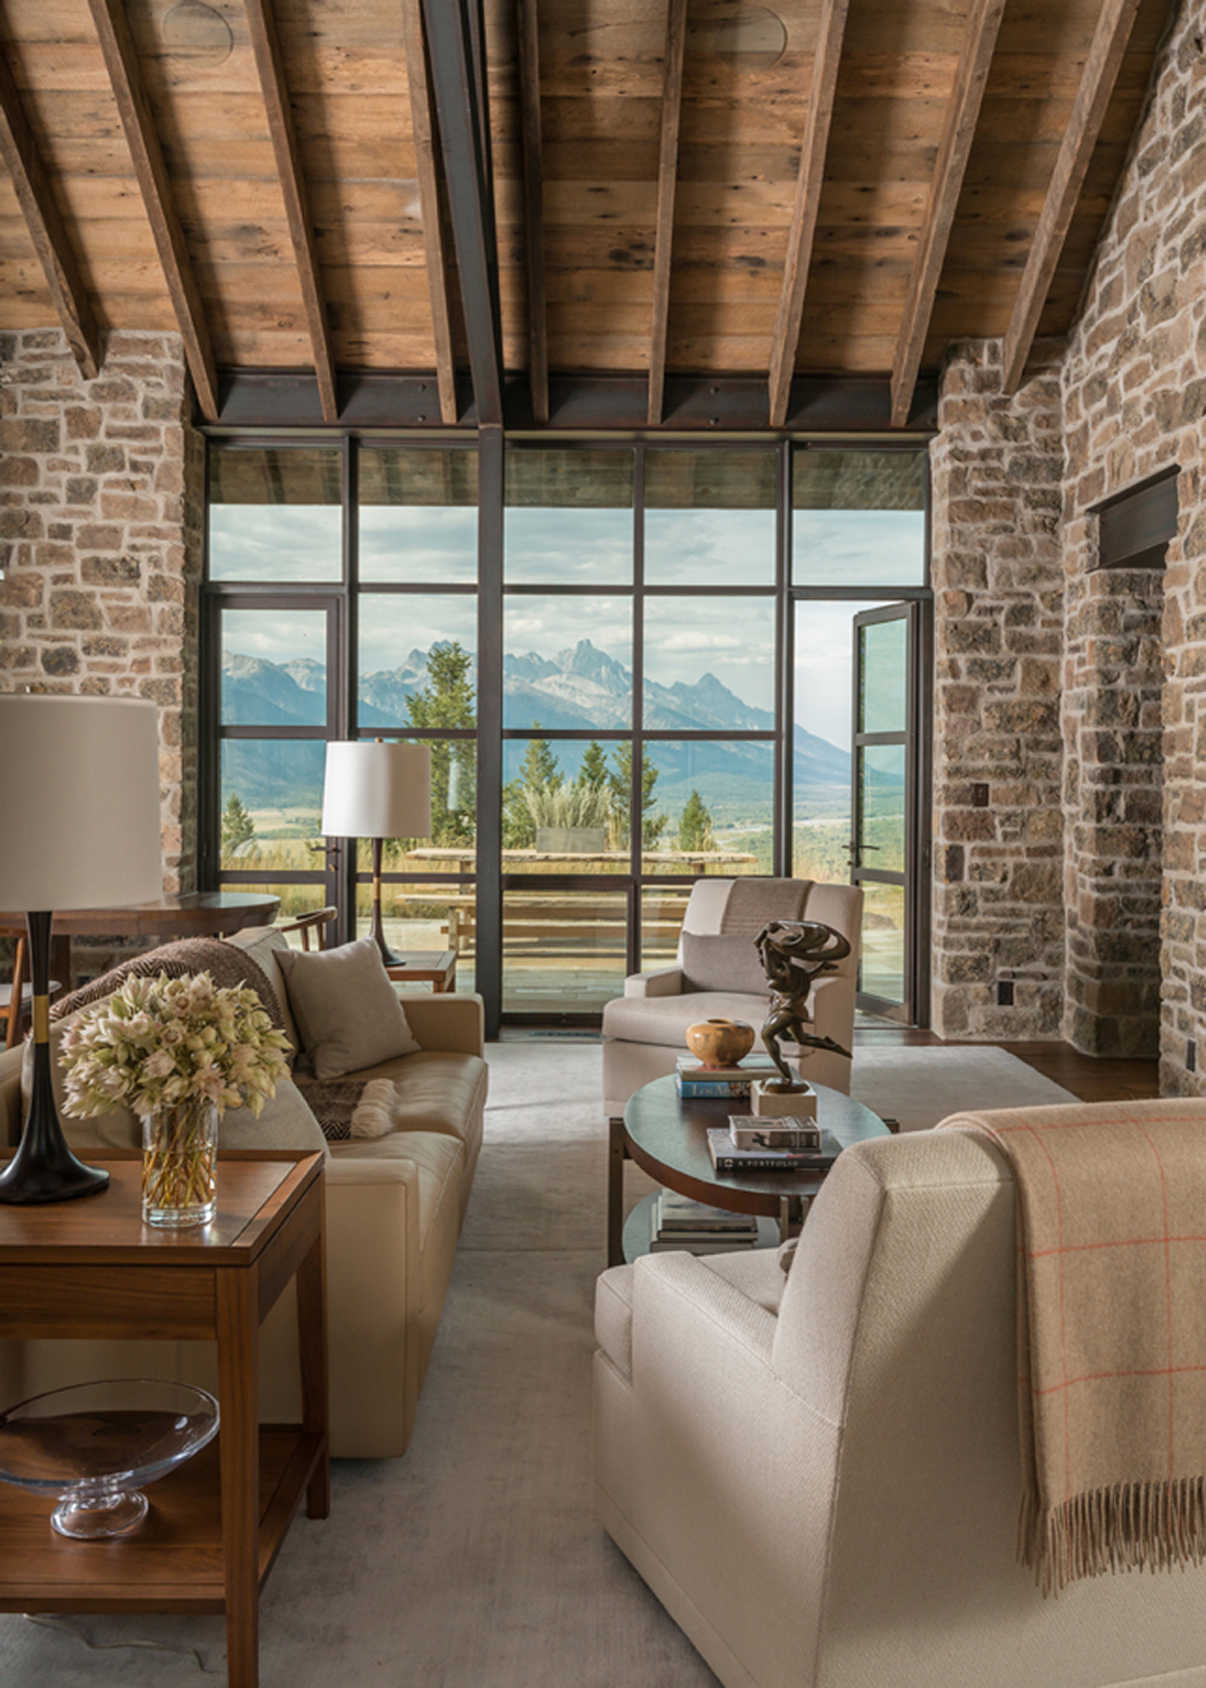 The Architectsu0027 Montana Moss Rock And Reclaimed Wood Offer Authentic  Western Rusticity In Rugged Complement To Contemporary Furnishings, Some  From The ...